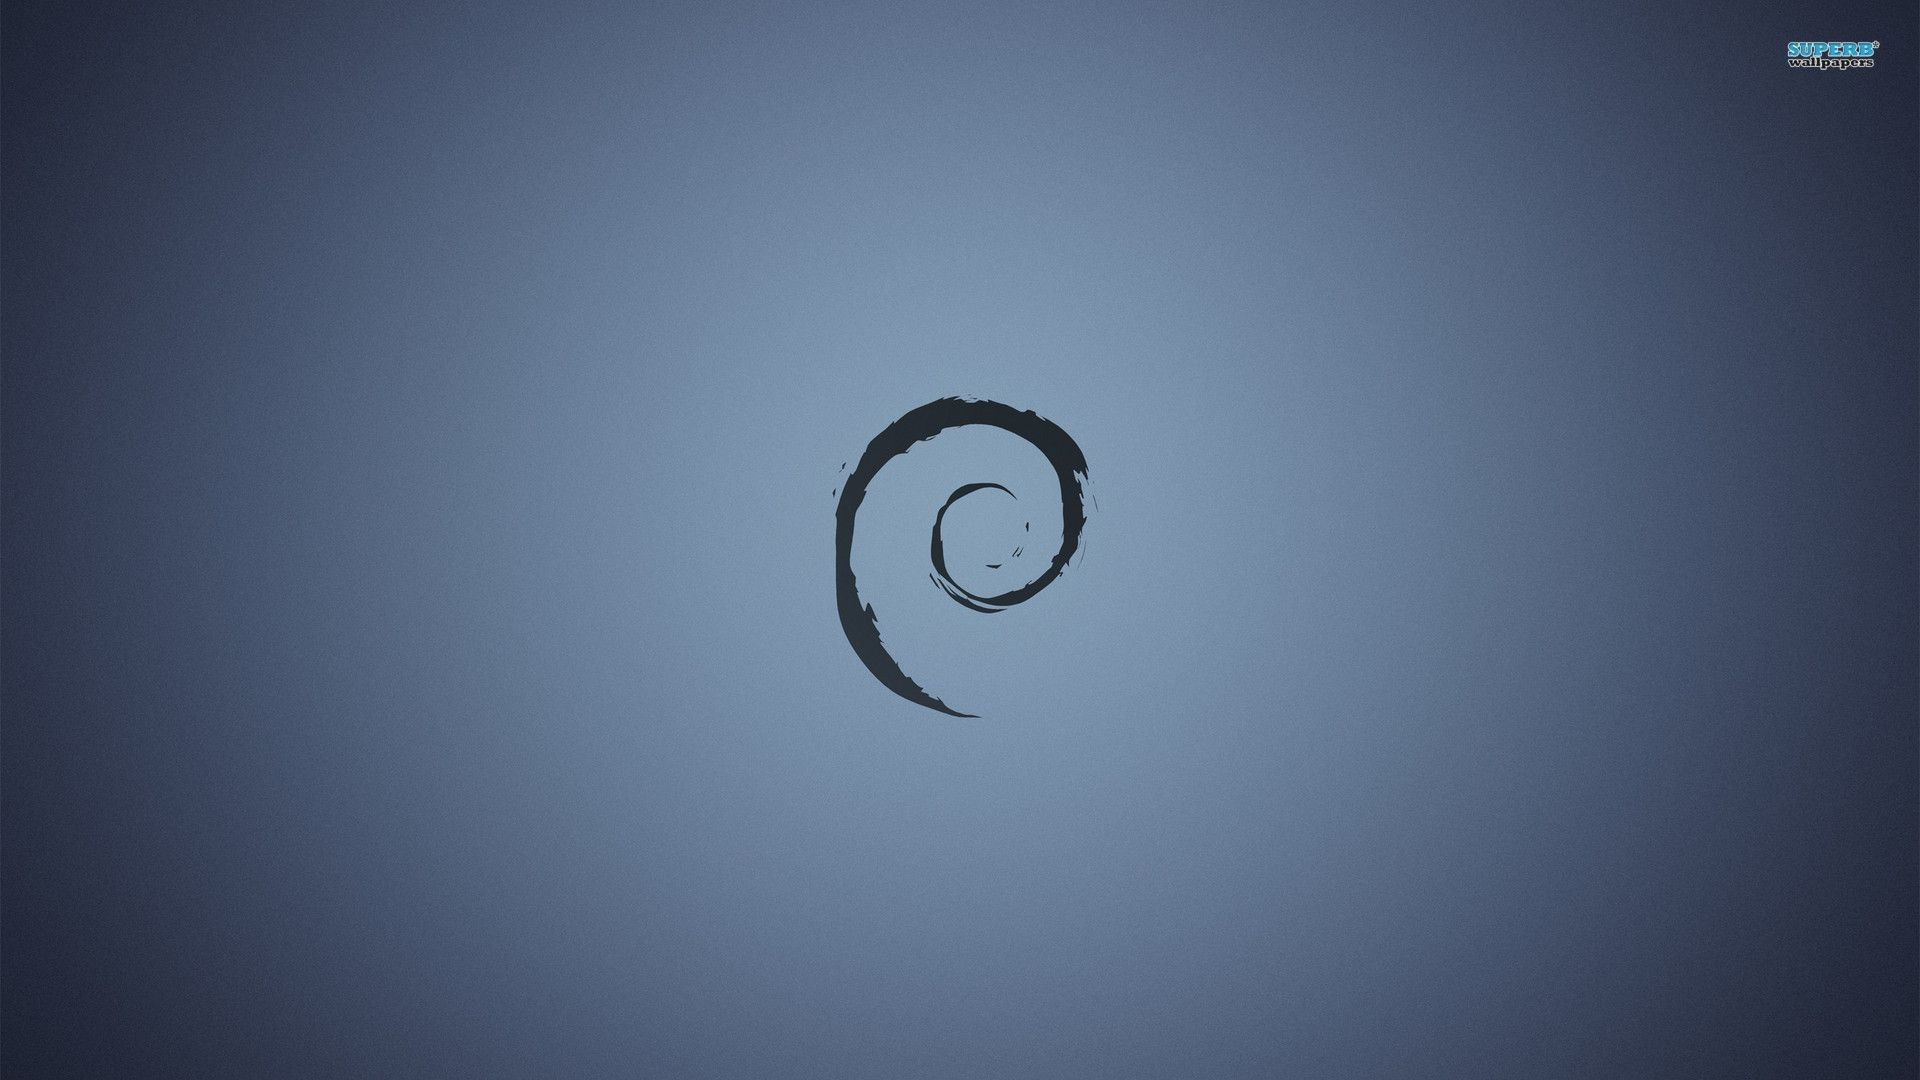 1920x1080 Debian Wallpapers - Wallpaper Cave